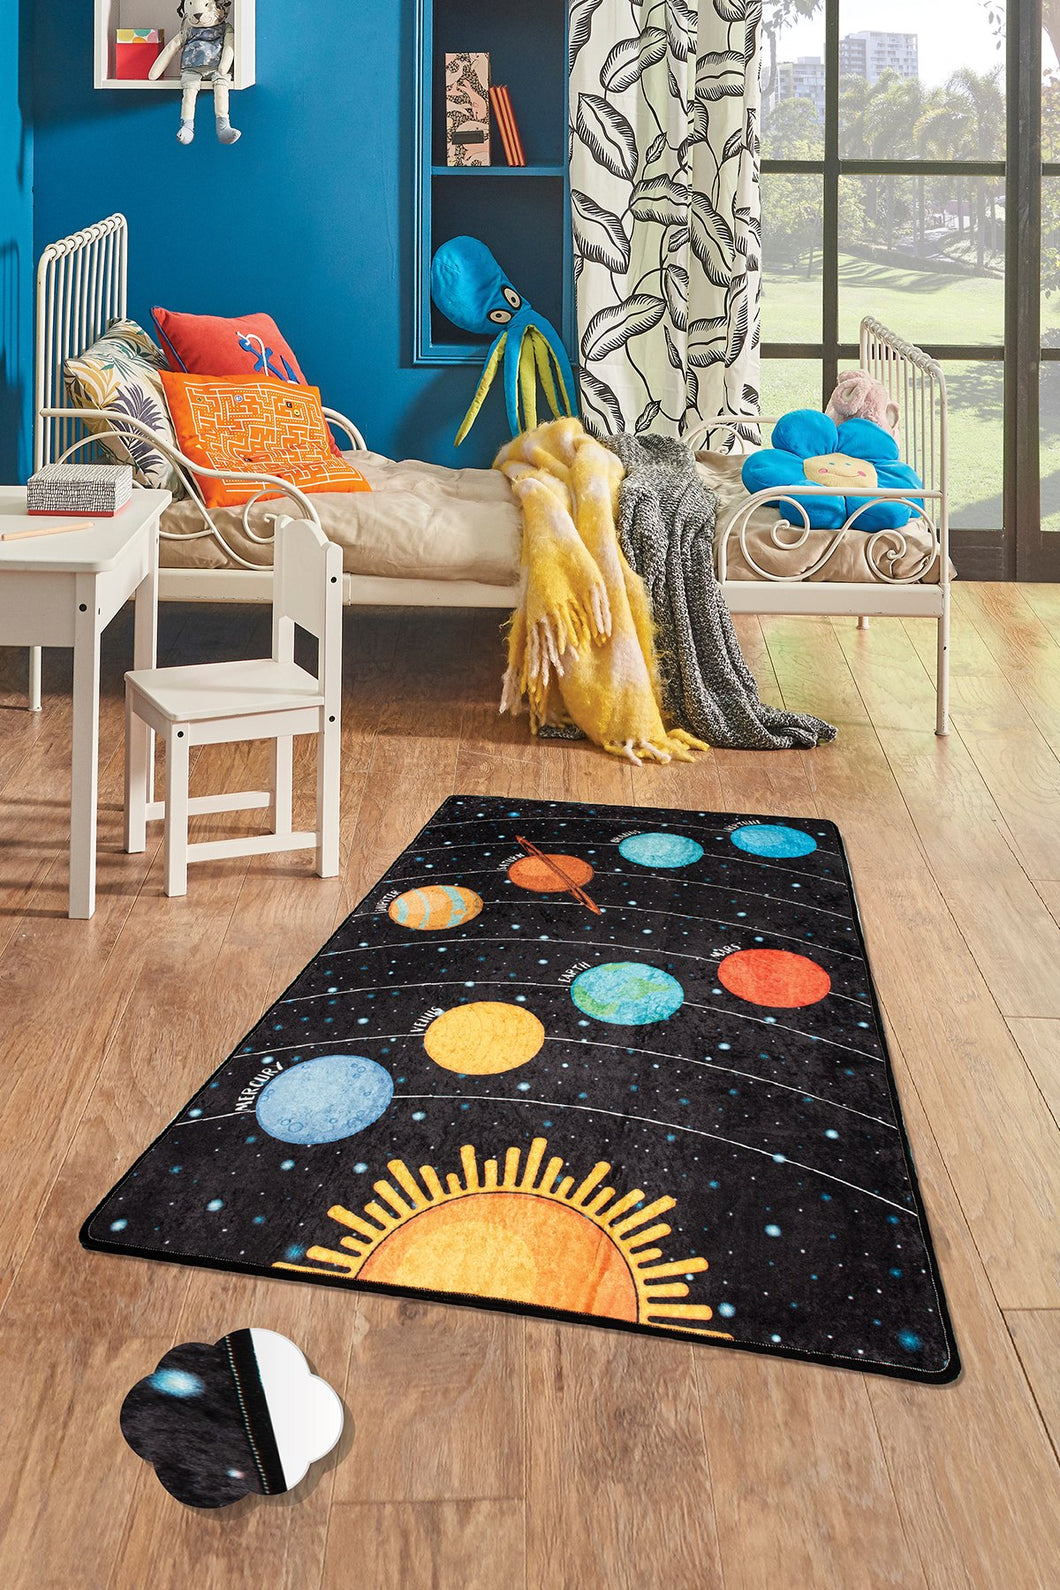 Antdecor Galaxy Rugs for kids Highway  3'x 5' 39